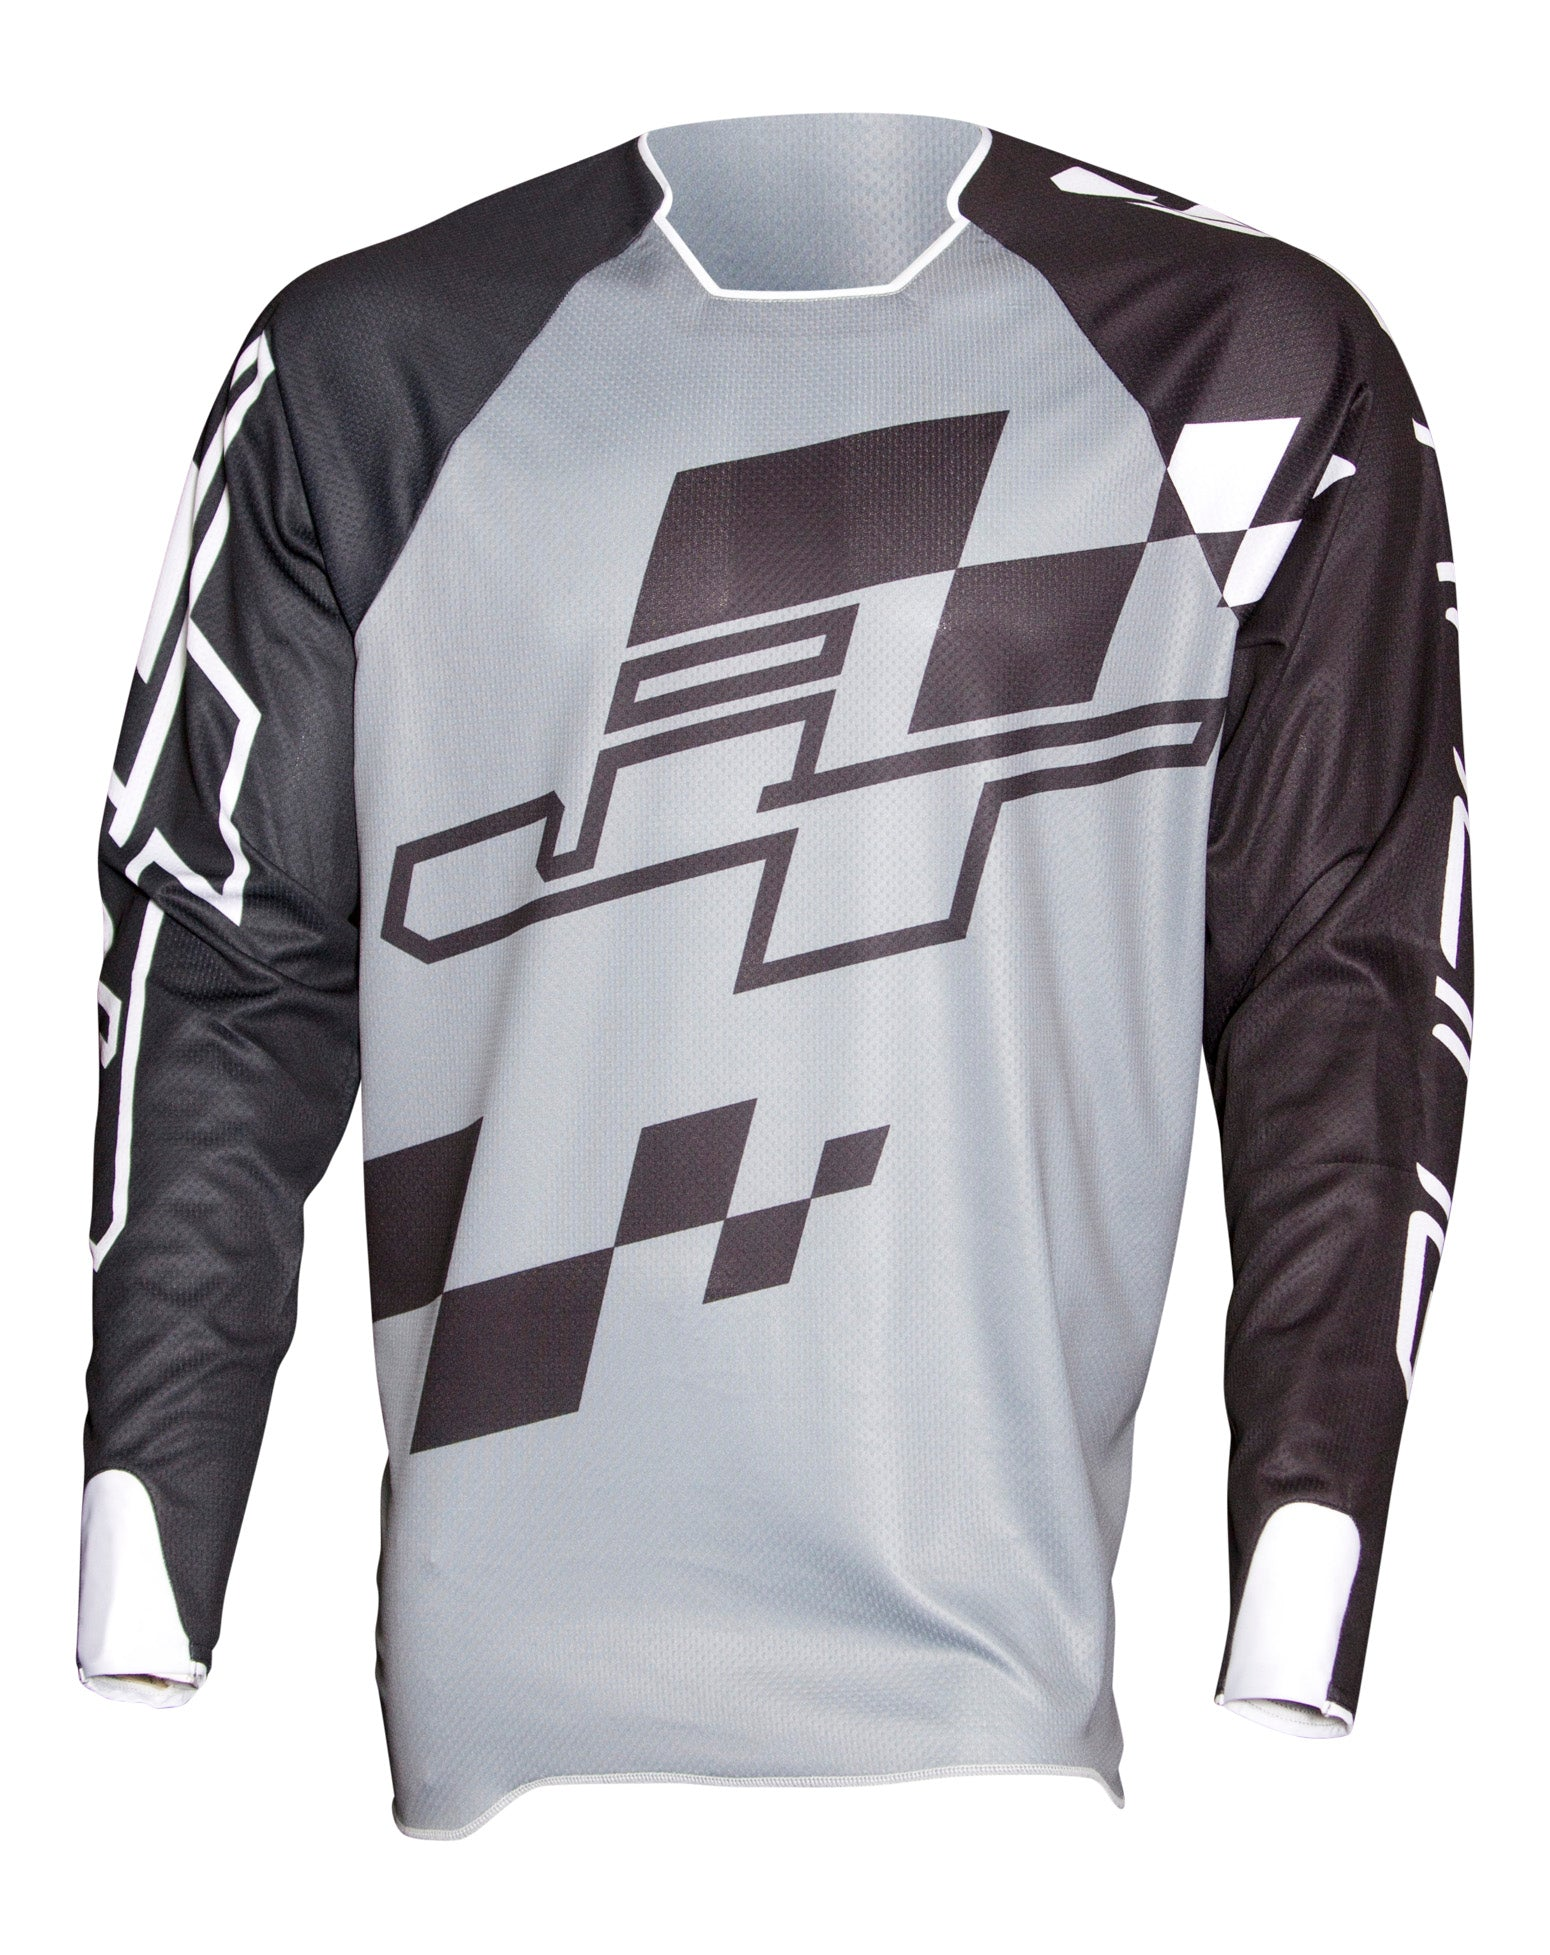 JT Racing USA-Hyperlite Checker Jersey, Black/Grey/White